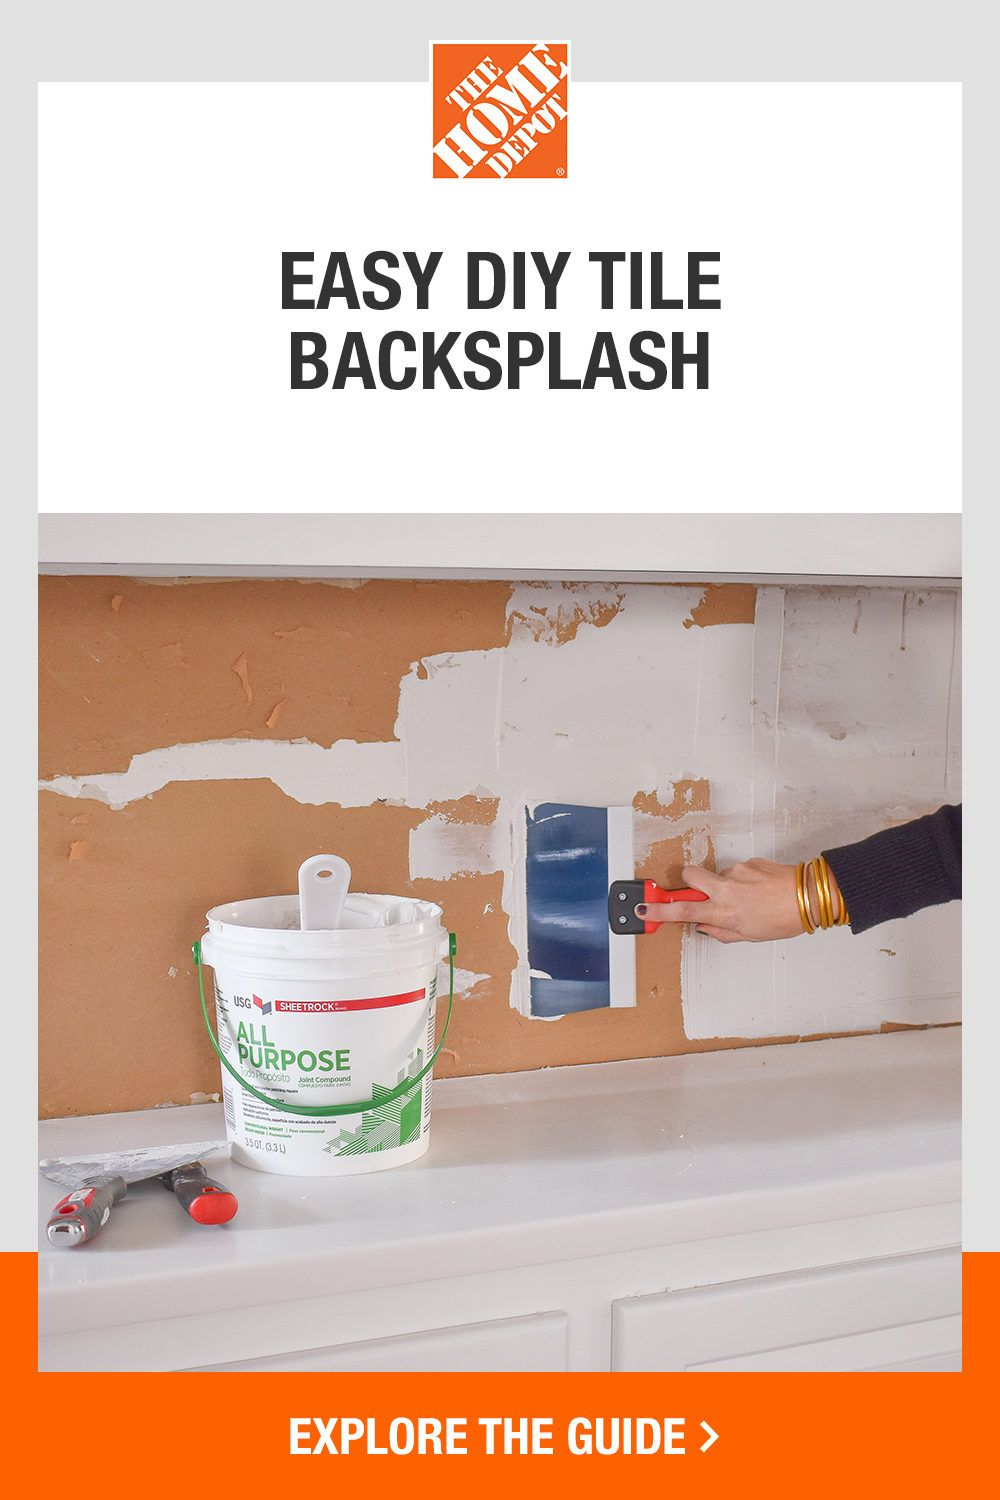 Give your home an easy update new tile backsplash. This Home Depot guide shares a step-by-step tutorial on how to install backsplash tile yourself, including tips and tricks for newbie DIYers. Click to learn how to add this timeless beauty and instant focal point to your home with help from The Home Depot.